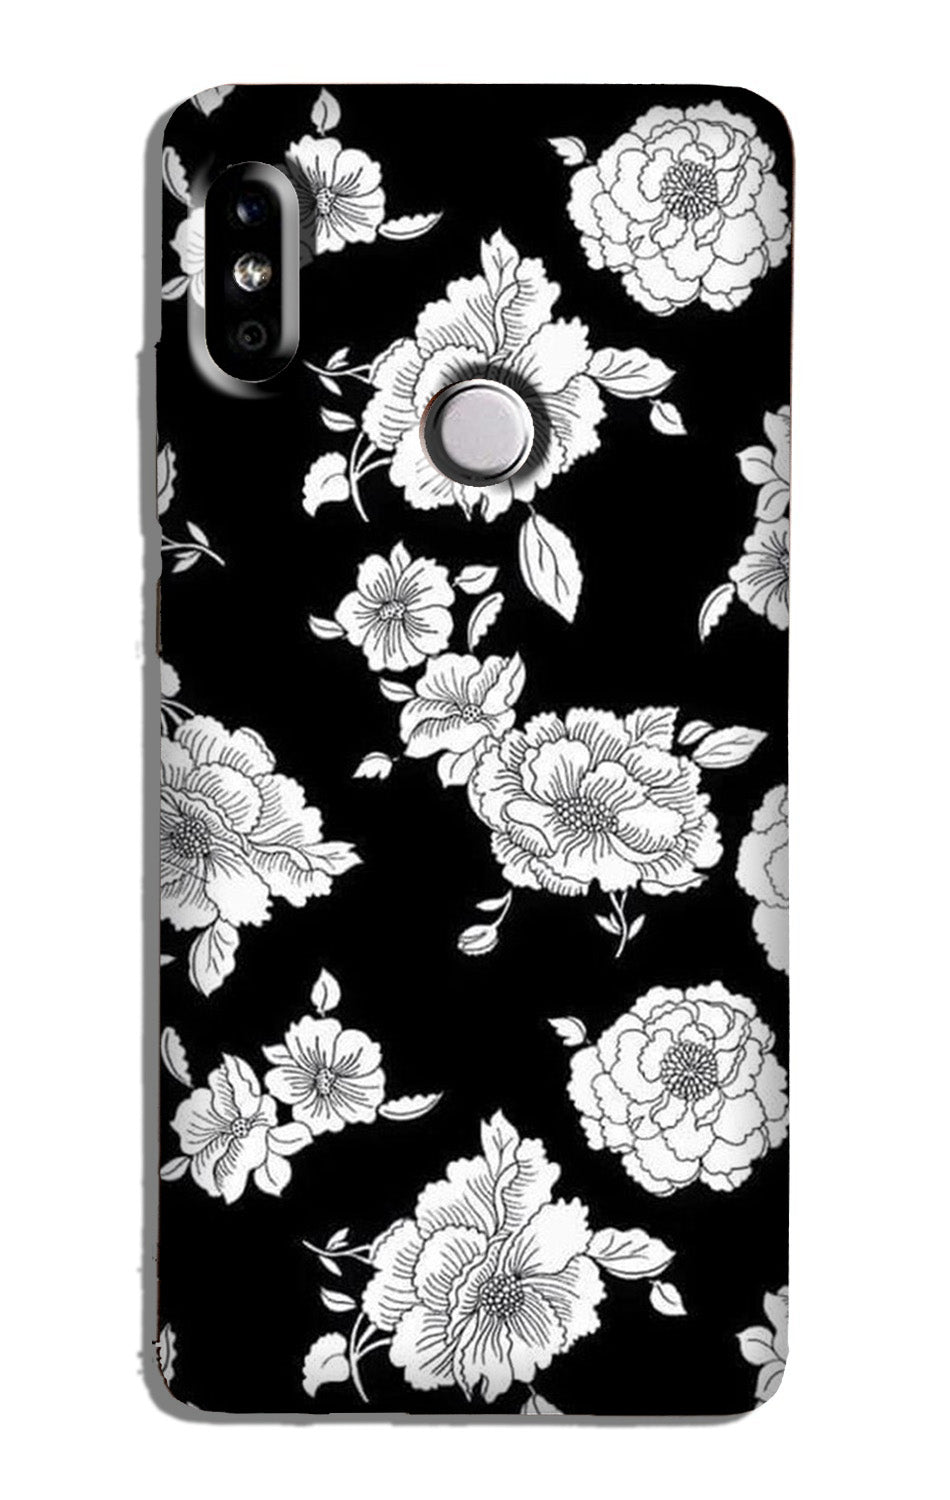 White flowers Black Background Case for Redmi Y2